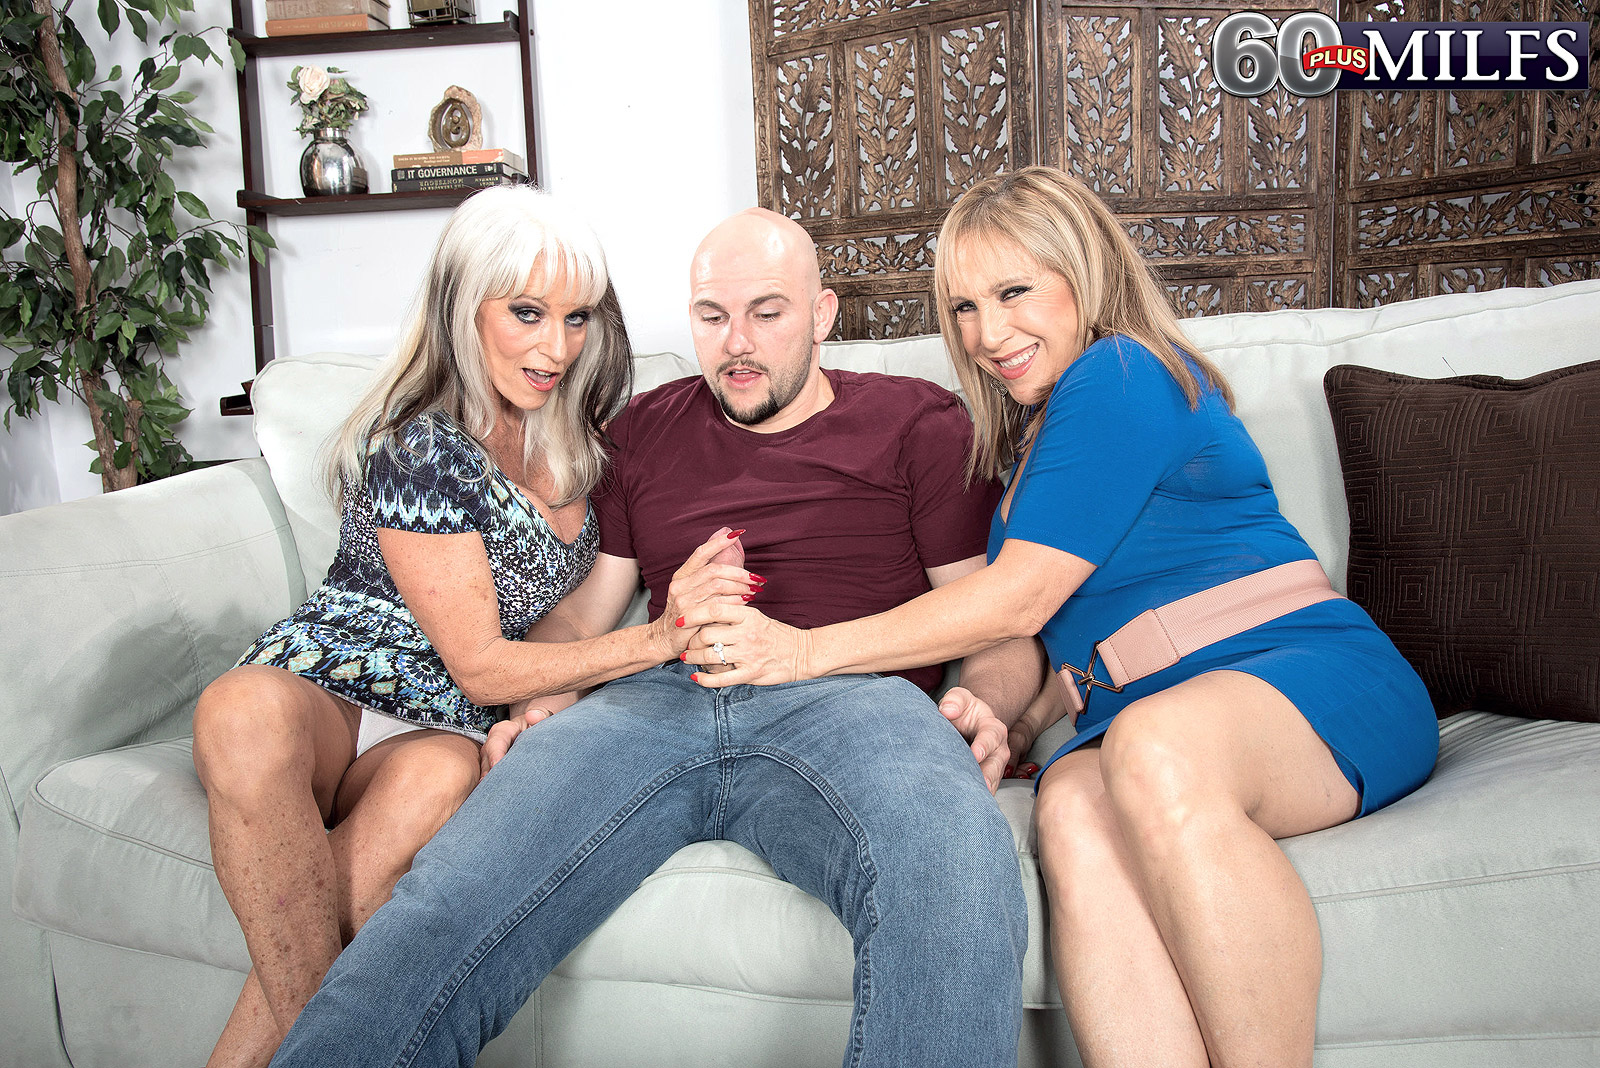 Sally D'Angelo and Luna Azul engaged in lustful forbidden granny threesome